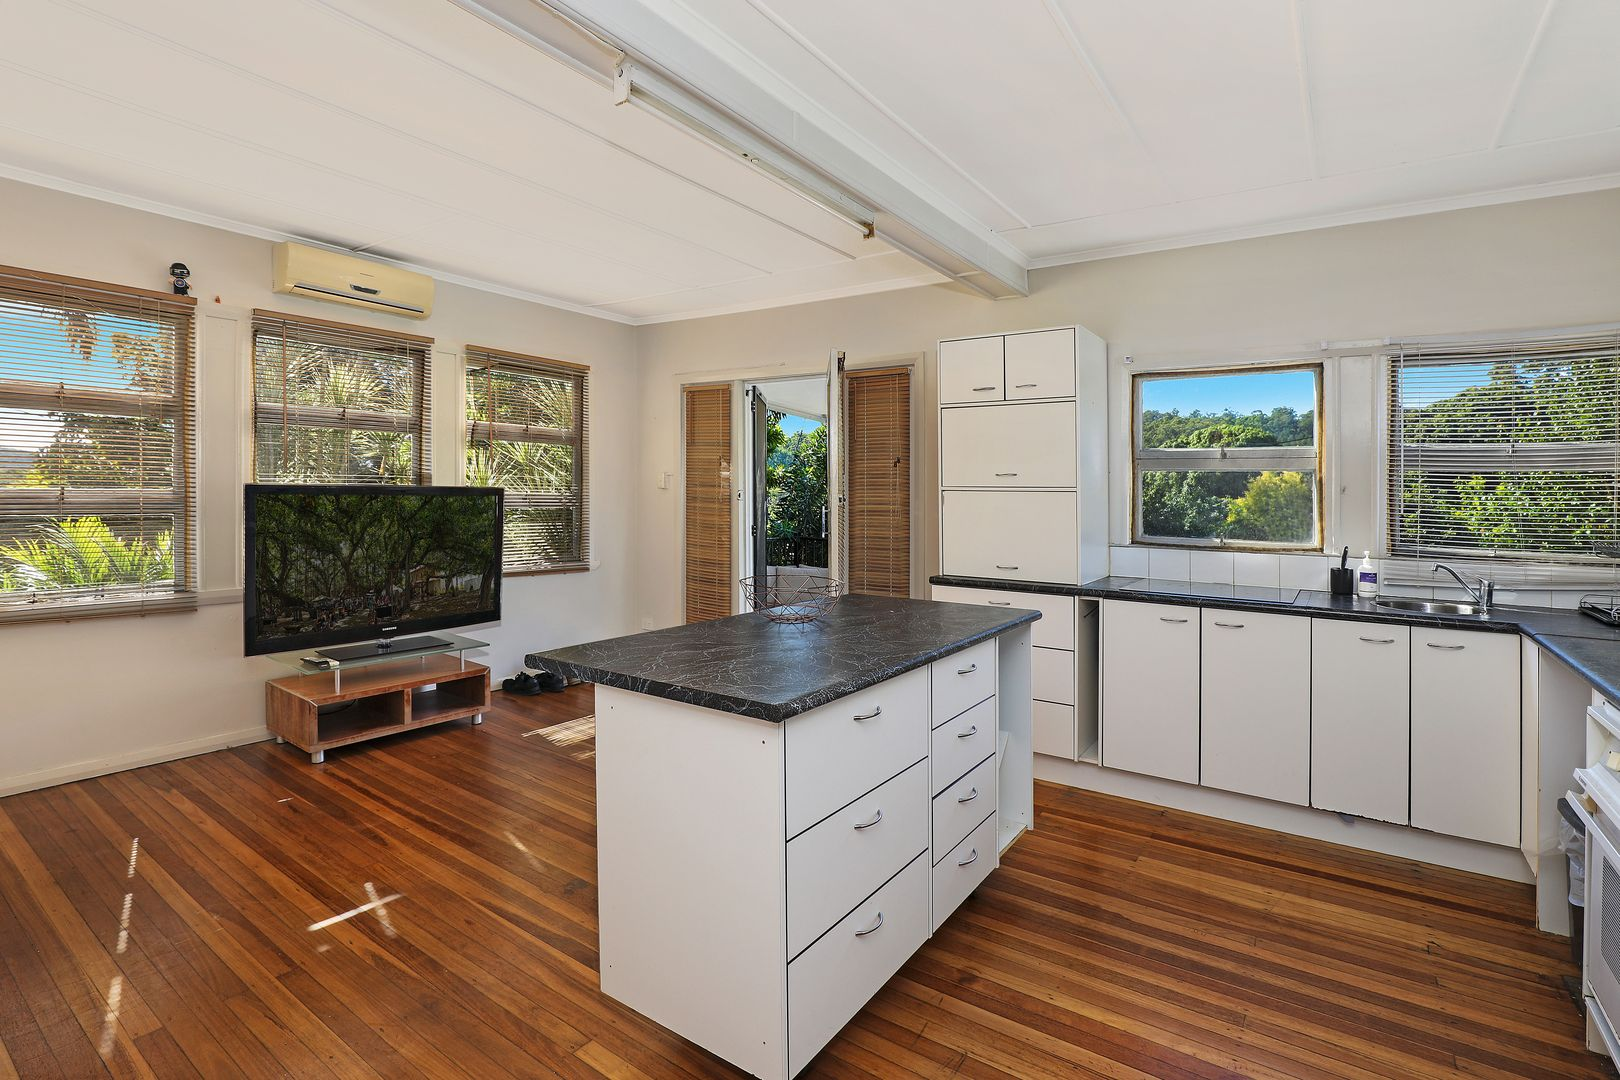 16 Mayfield Street, Nambour QLD 4560, Image 1